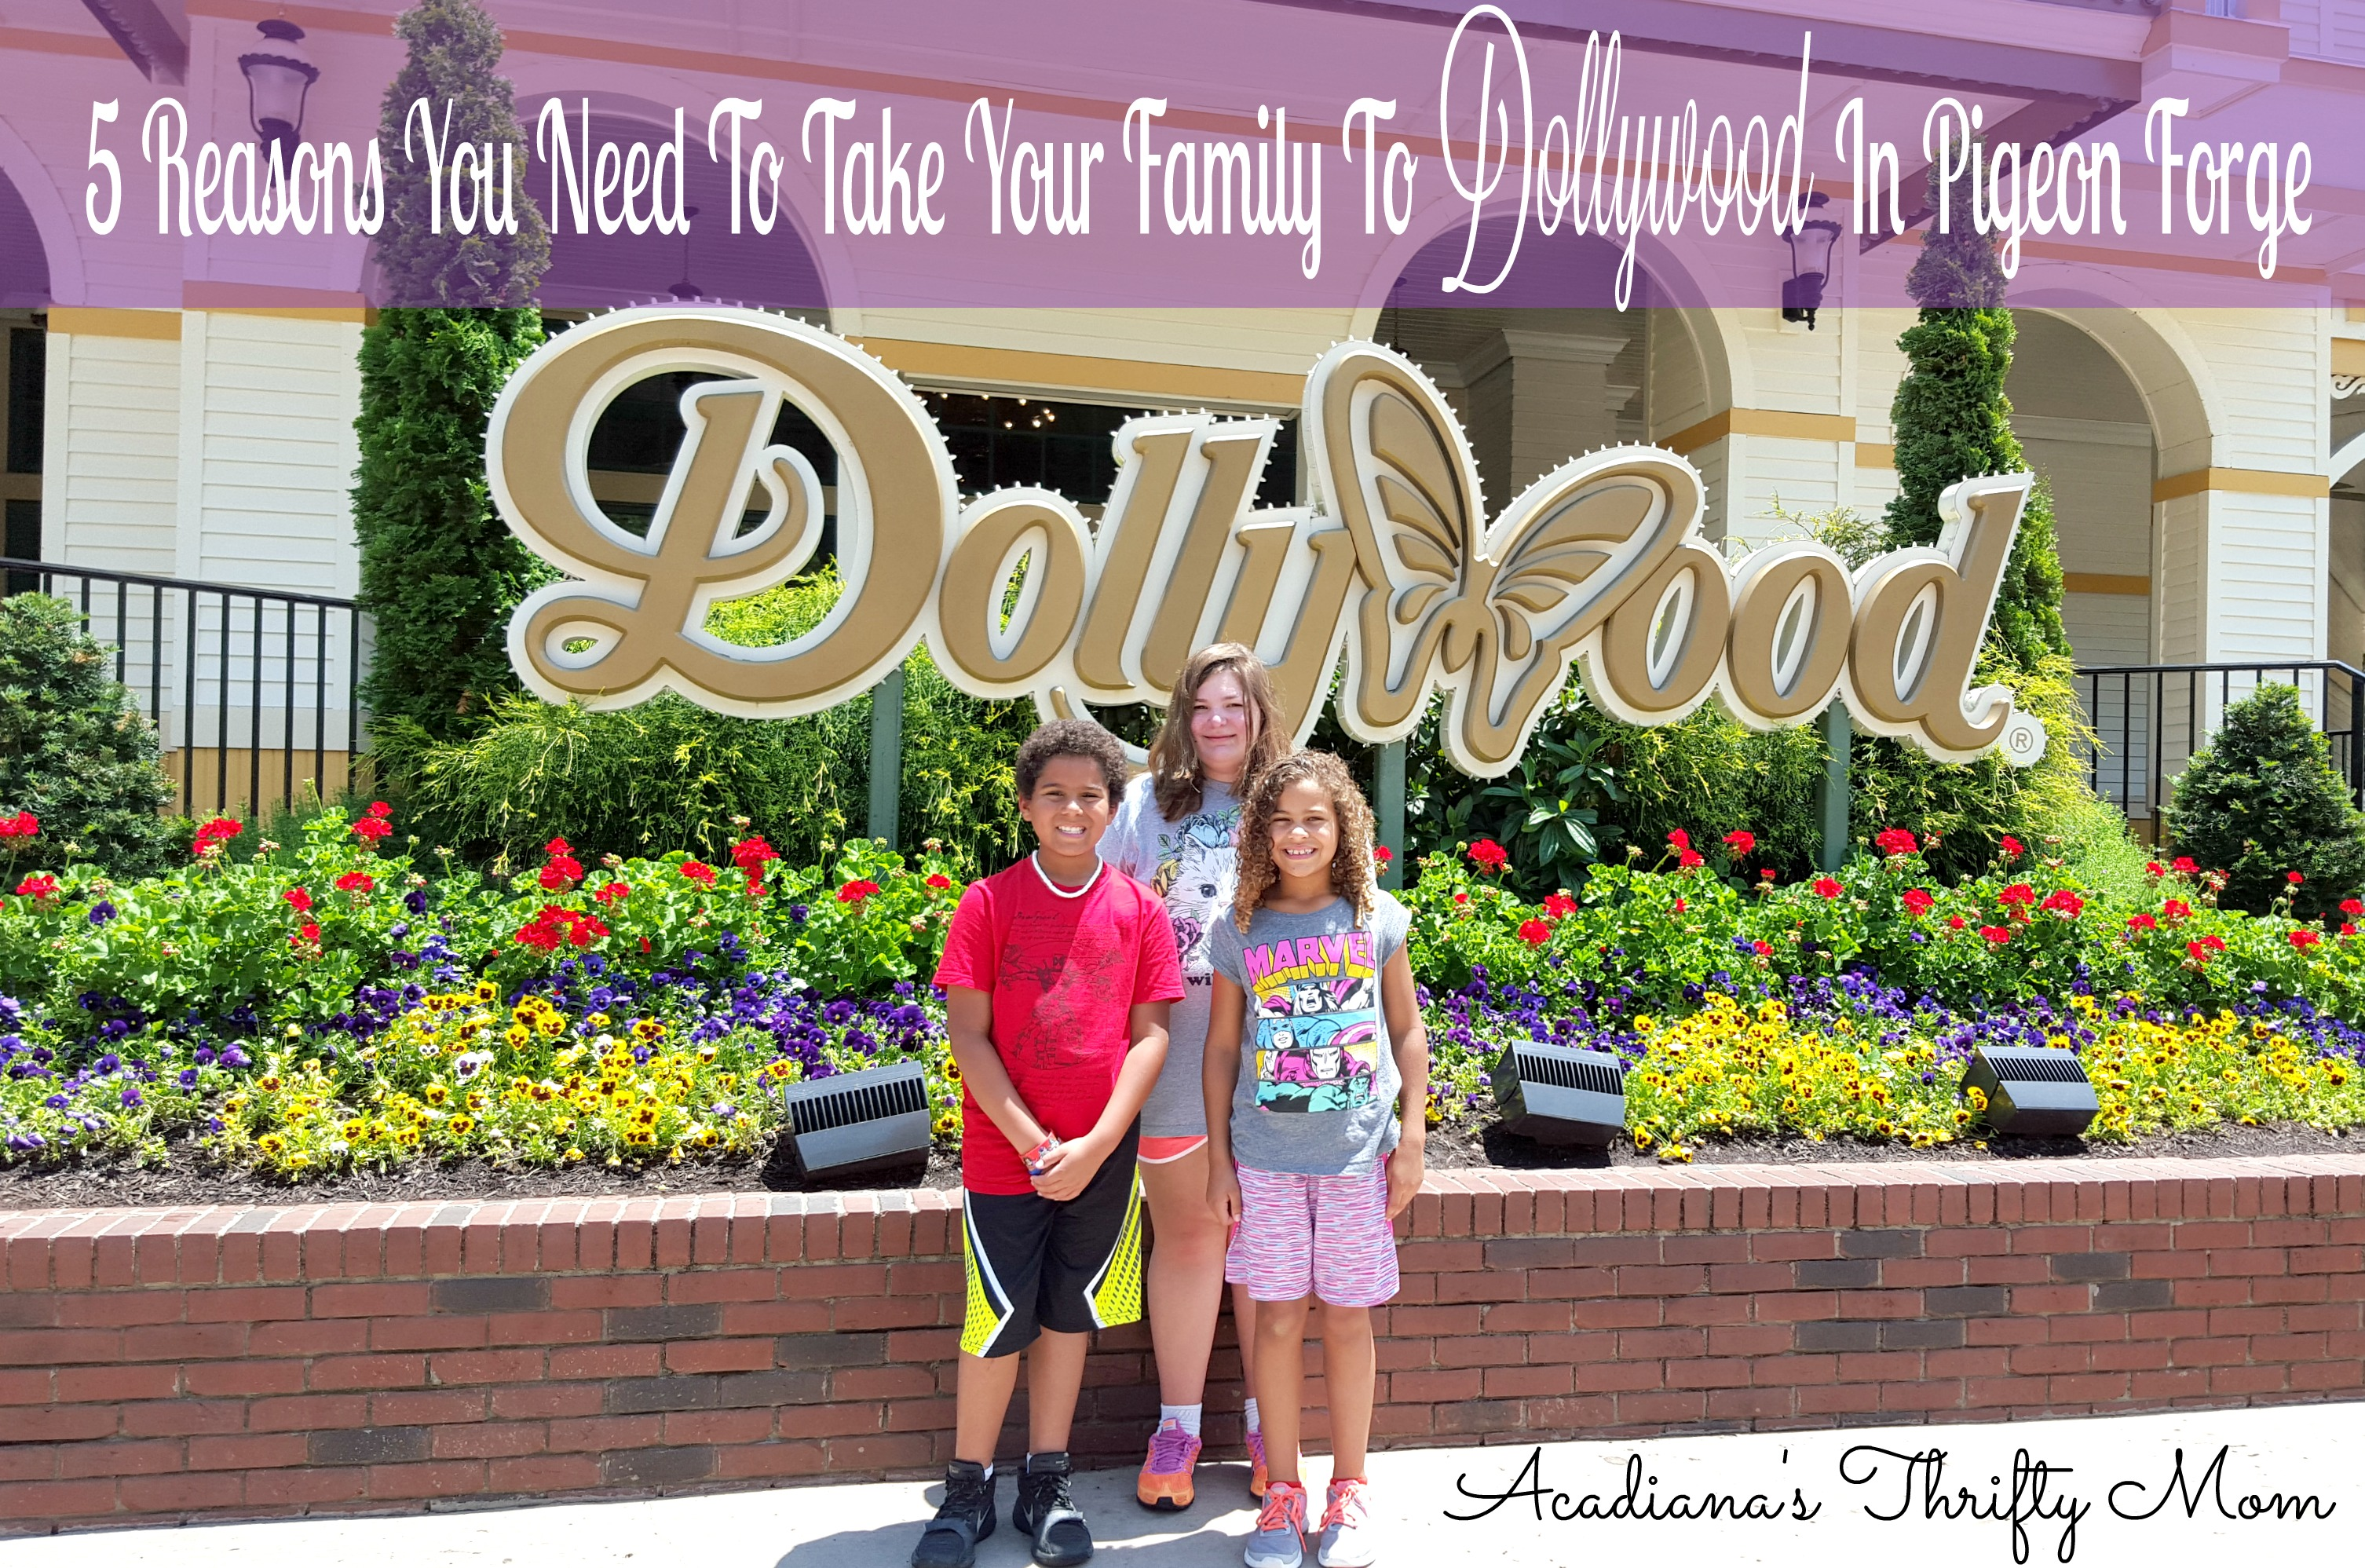 5 Reasons You Need To Take Your Family To Dollywood In Pigeon Forge